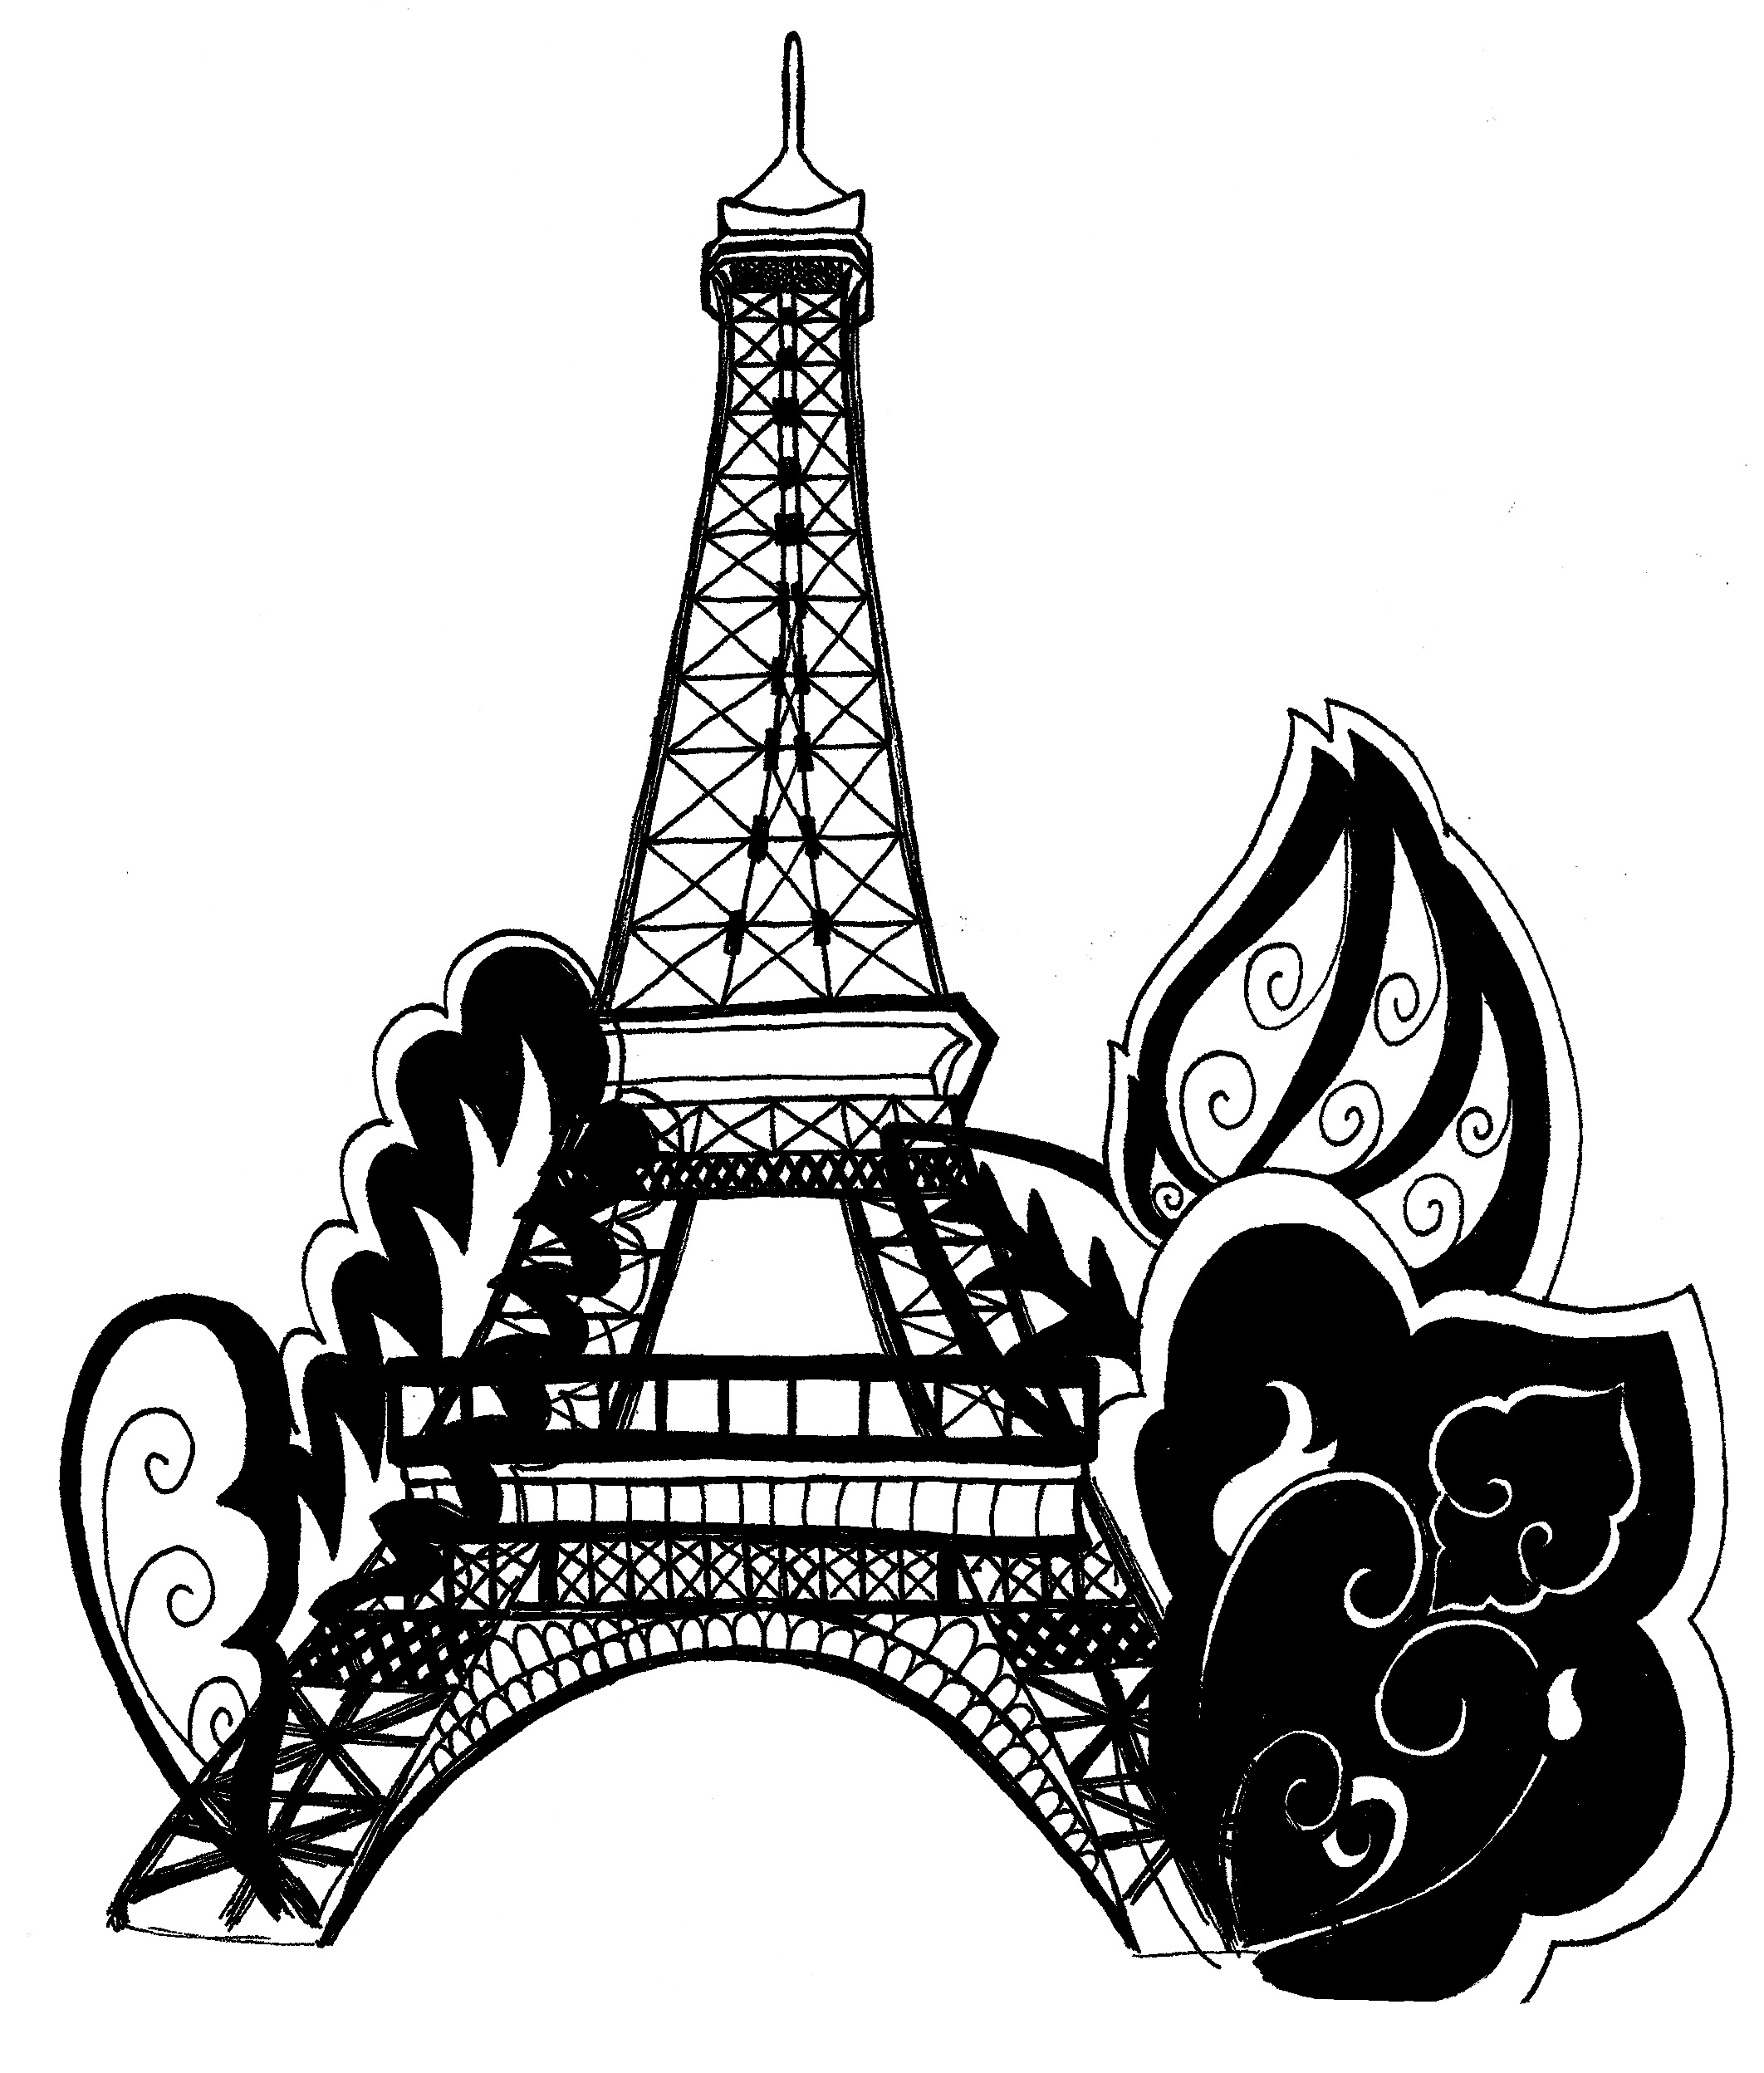 printable eiffel tower printable eiffel tower coloring pages for kids cool2bkids tower eiffel printable